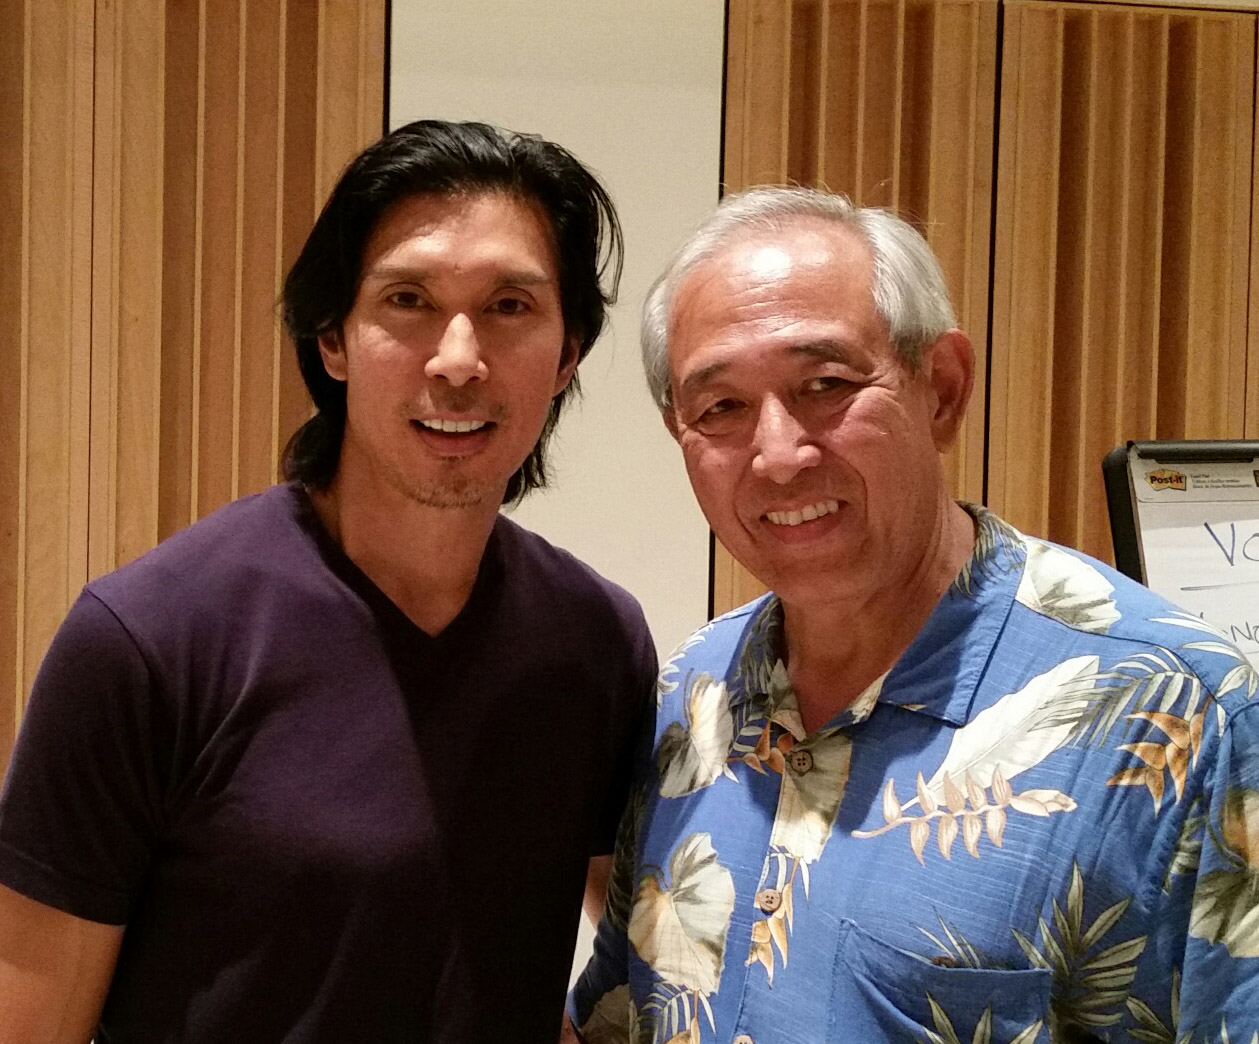 Keo Woolford and Dennis Chun at the conservatory workshop in june.